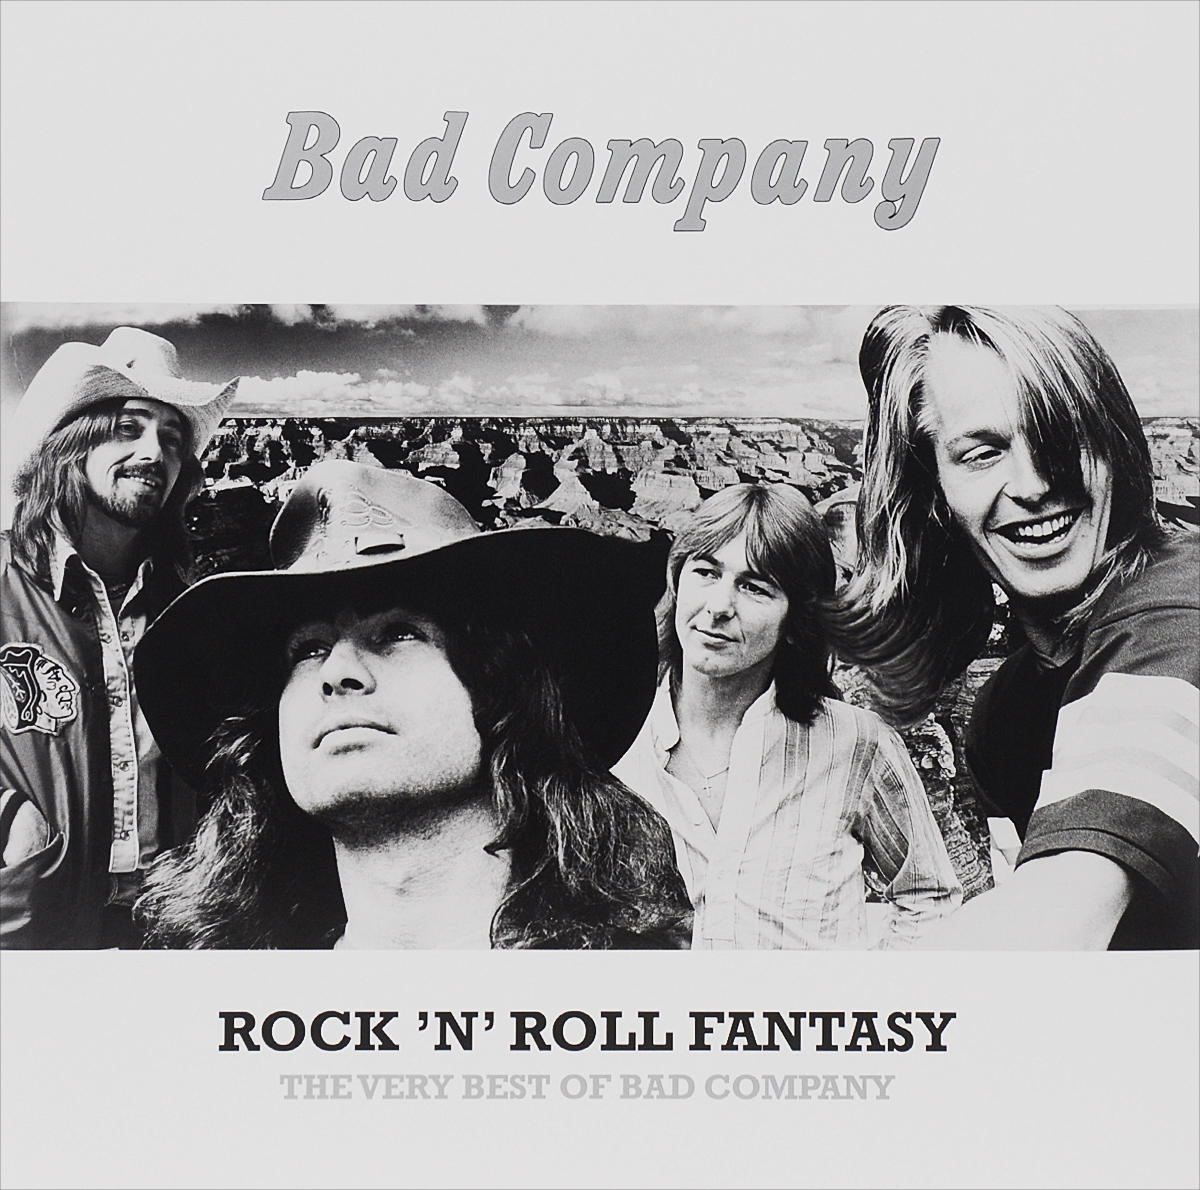 """Bad Company"" Bad Company. Rock 'N' Roll Fantasy. The Very Best Of Bad Company (2 LP)"